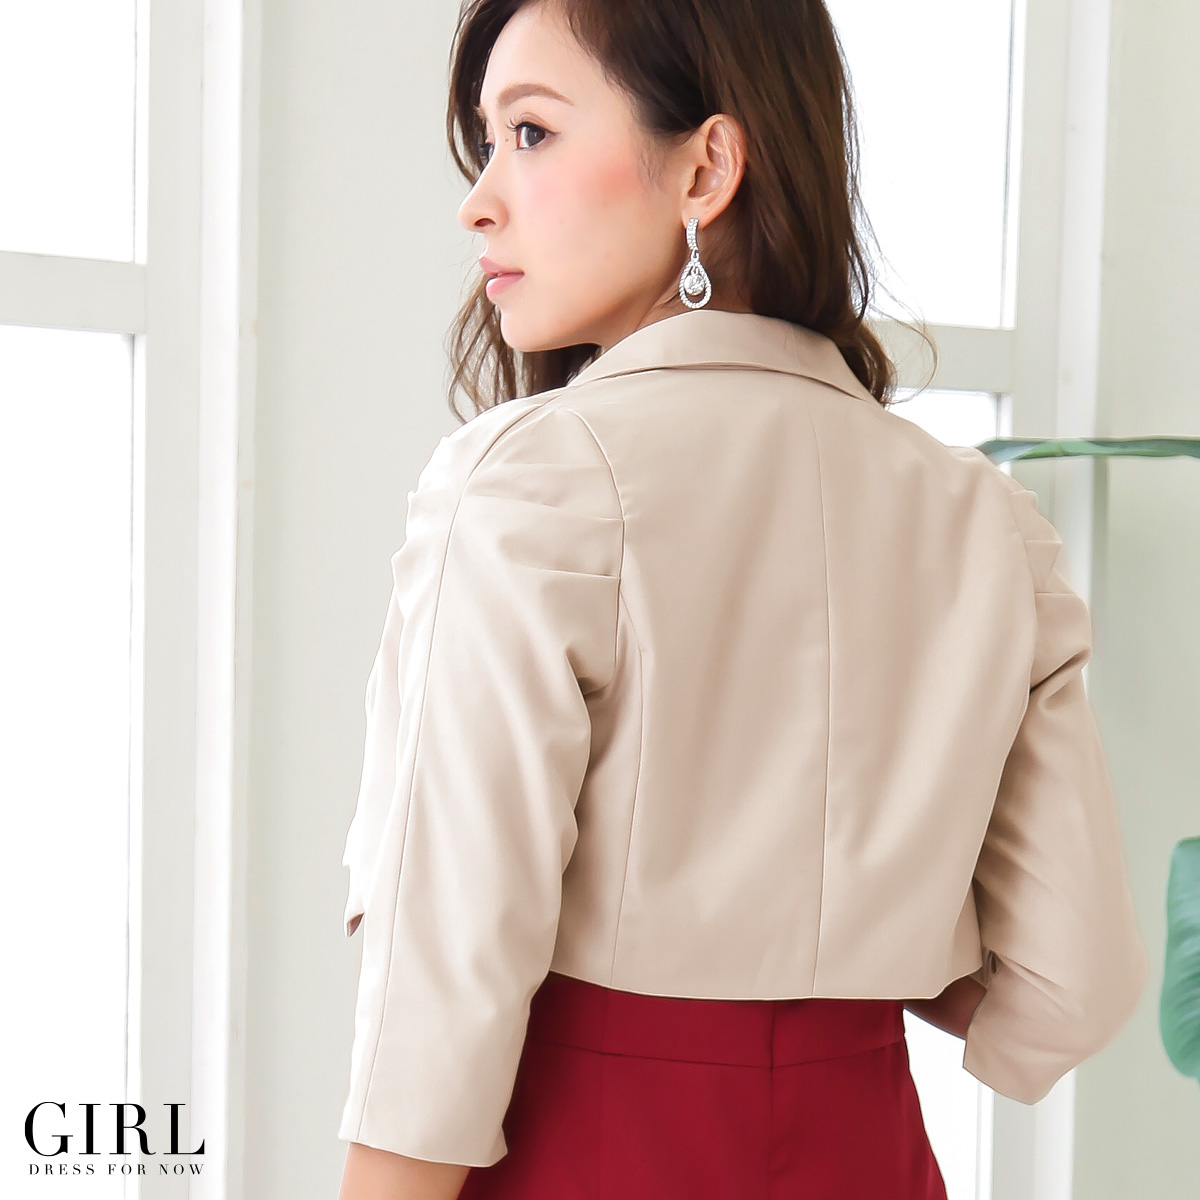 Dress shop GIRL | Rakuten Global Market: Wedding Bolero invited ...